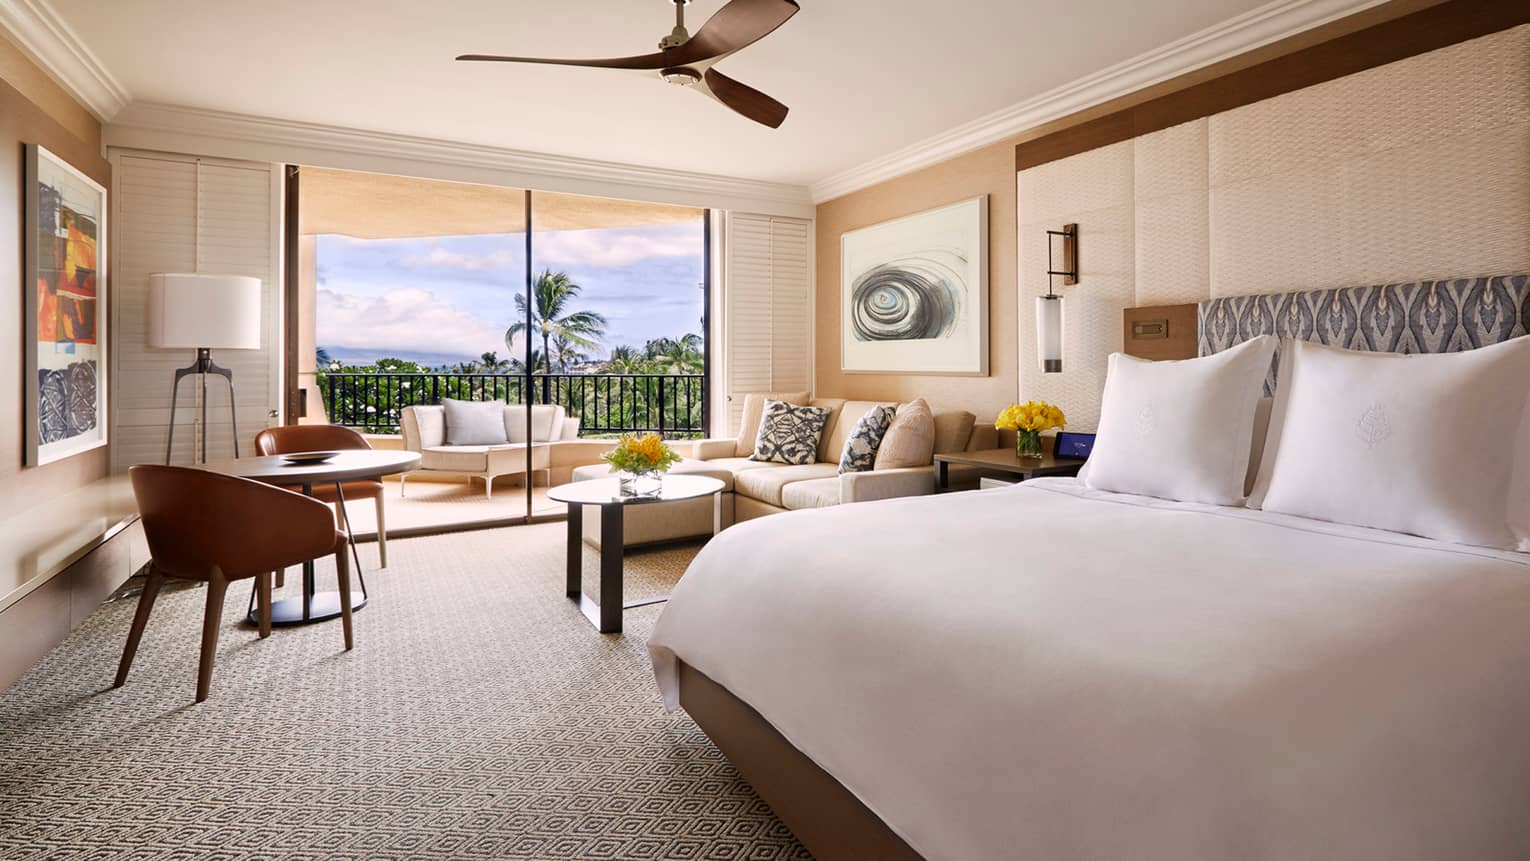 Ocean-View Prime room with king-sized bed and two-seat dining table, white sofa beside patio door